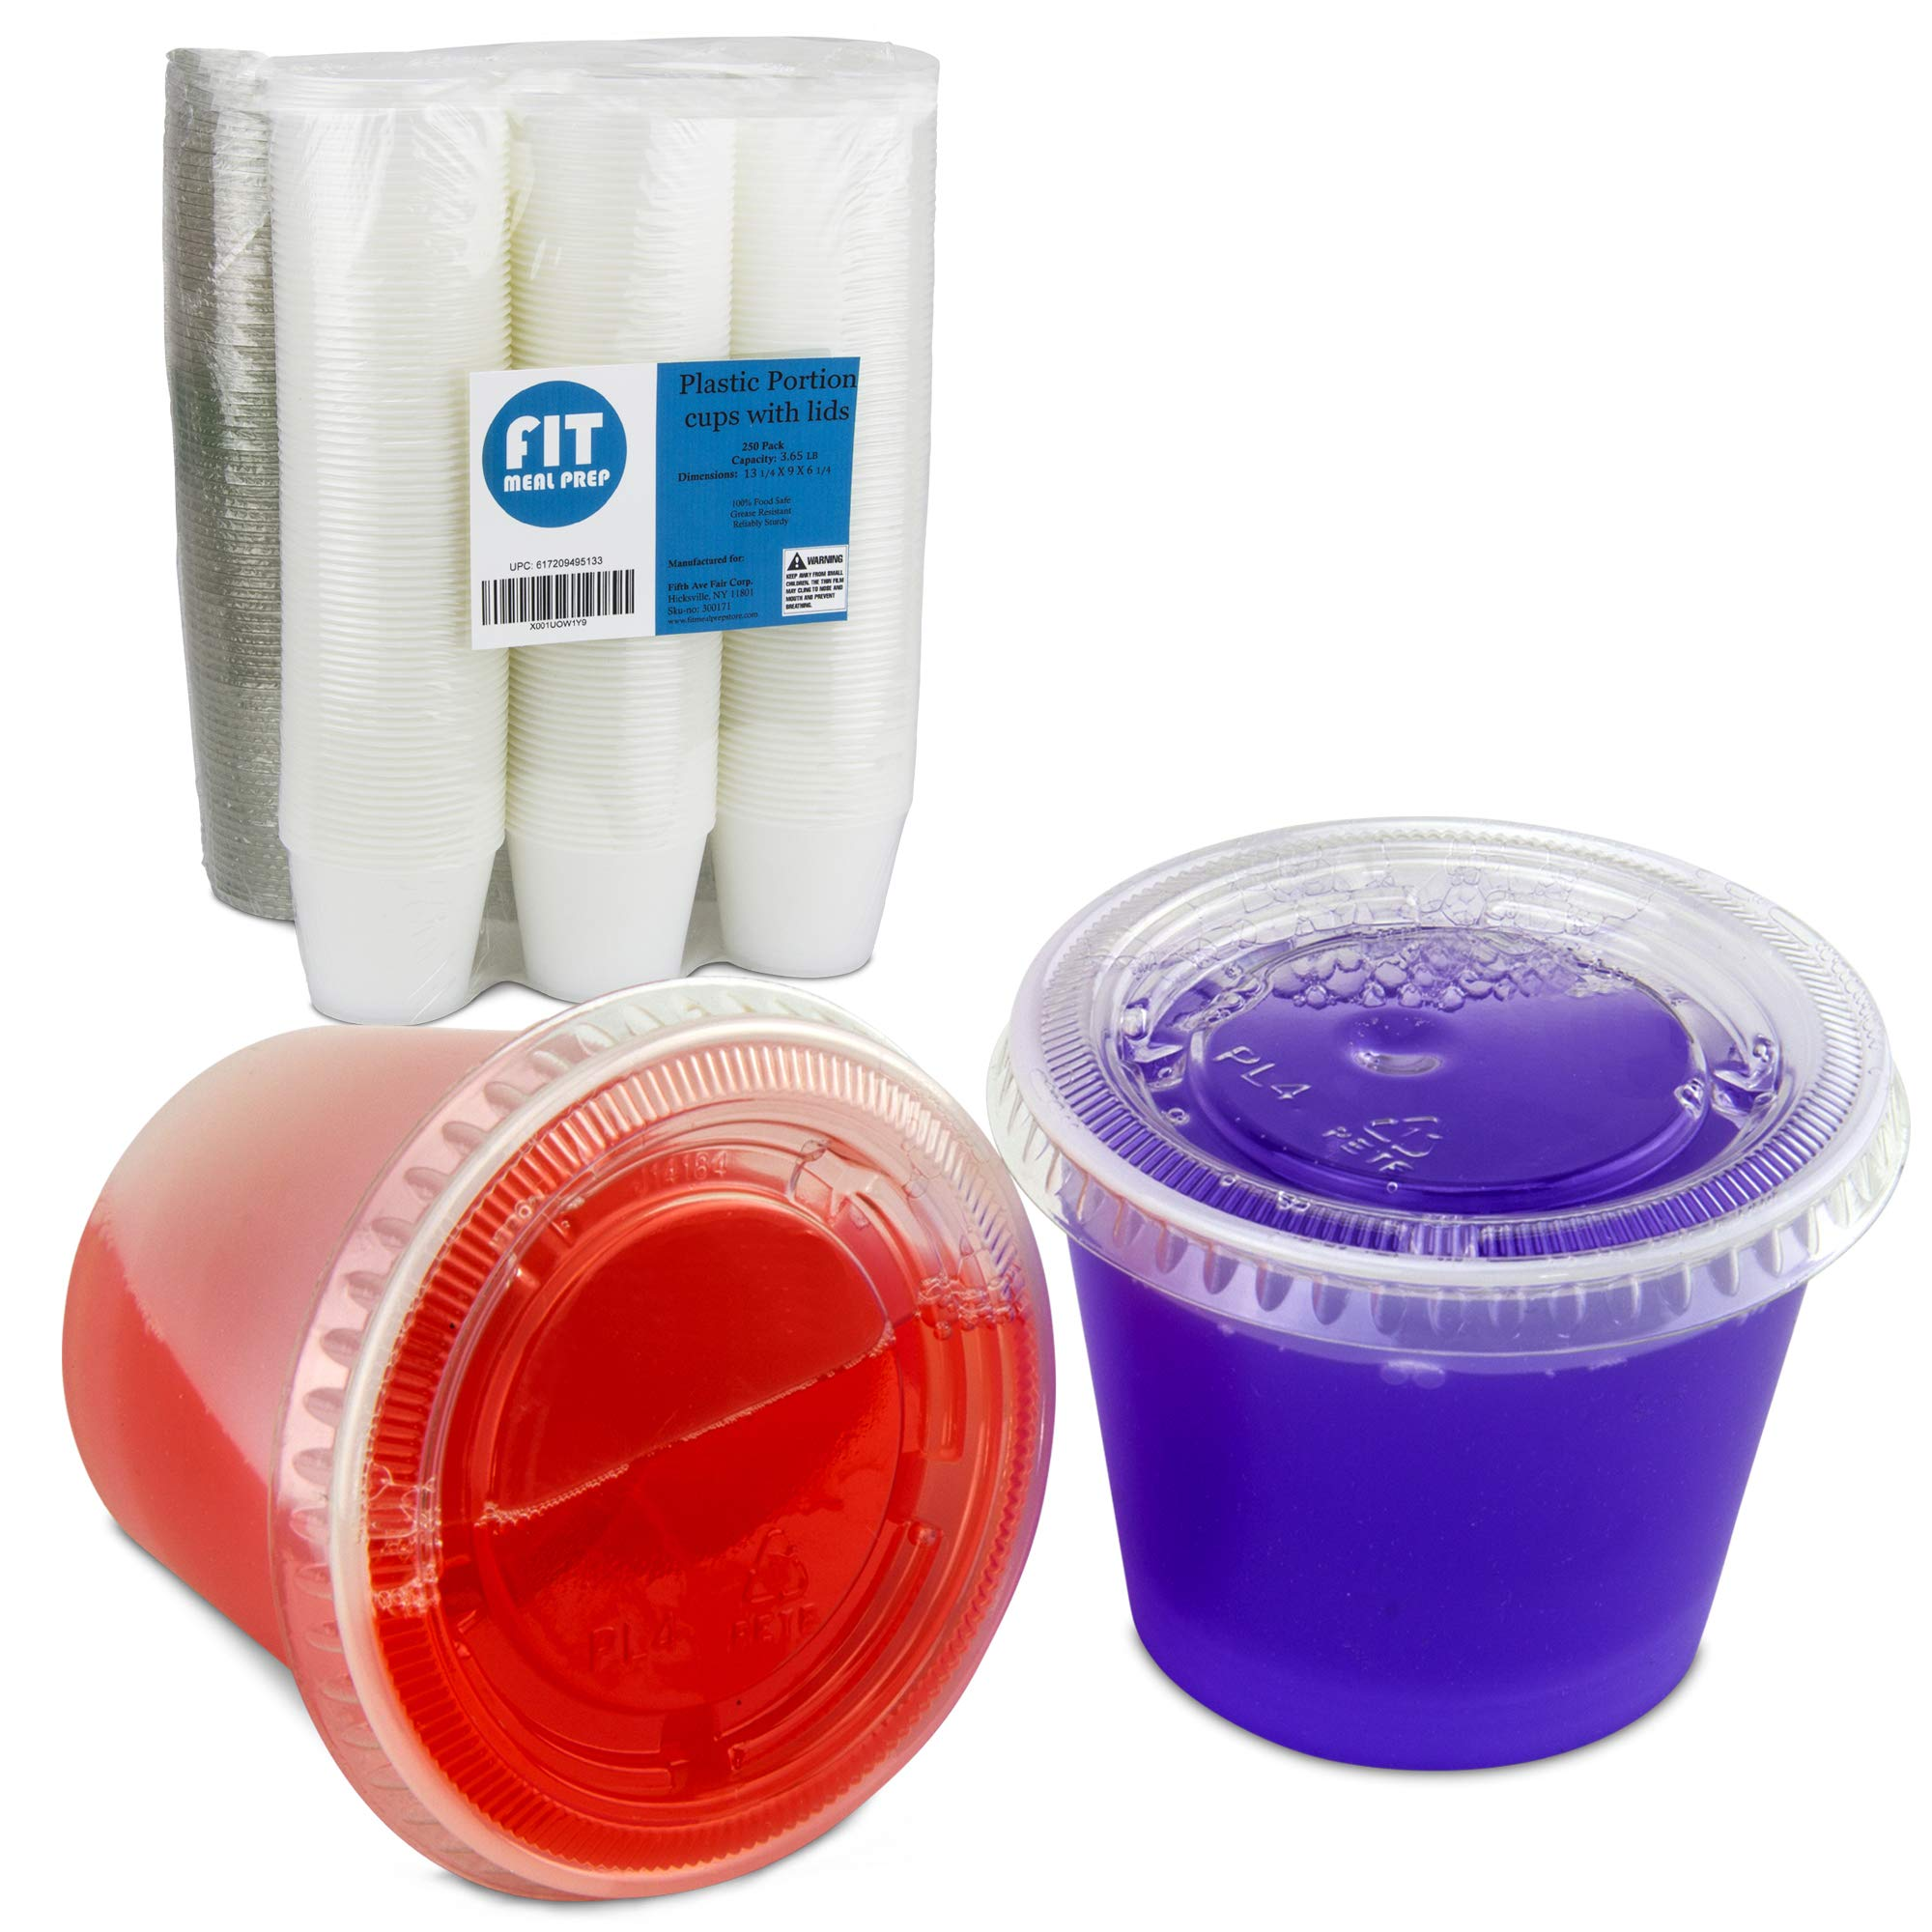 [250 Pack] 5.5 Ounce BPA-Free Plastic Portion Cup with Clear Lids Disposable Jello Shots Sauce Condiment Souffle Dressing Mini Containers by Fit Meal Prep